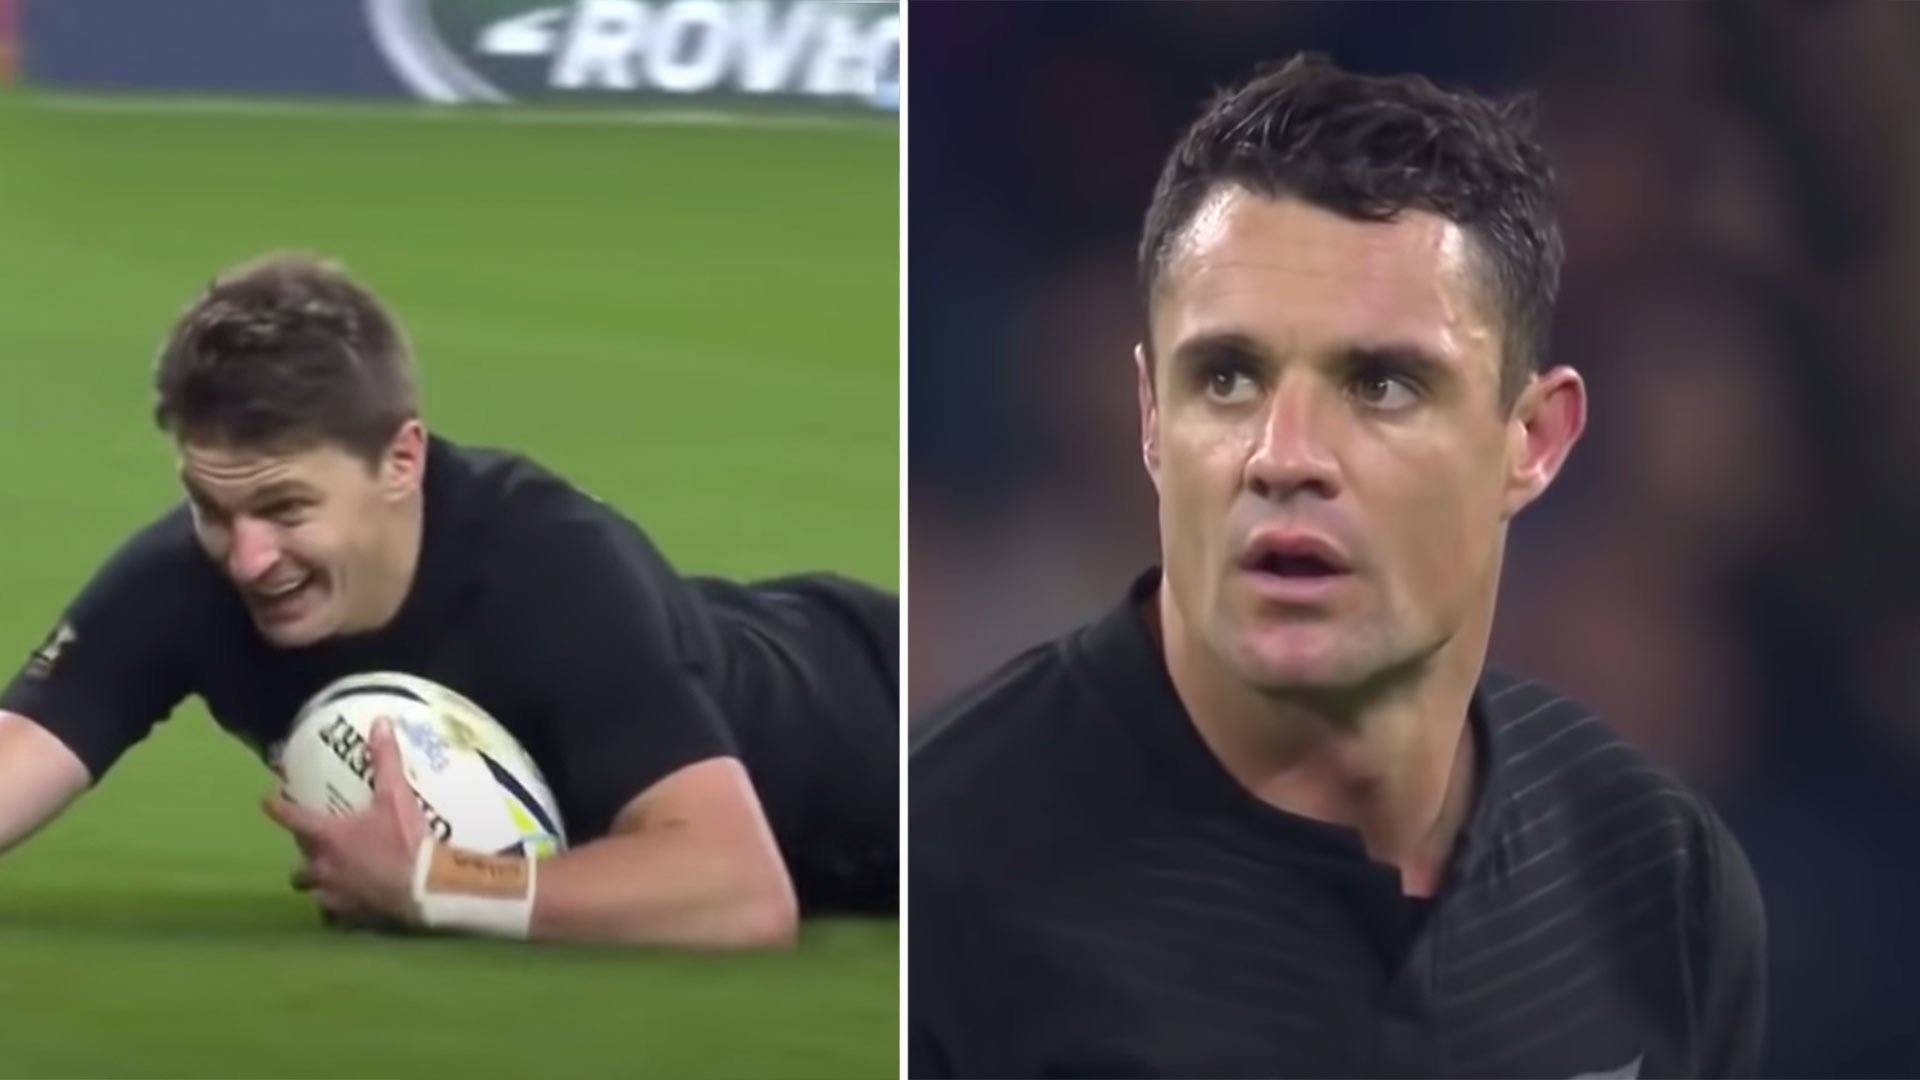 Dan Carter and Beauden Barrett were insane the last time they played together